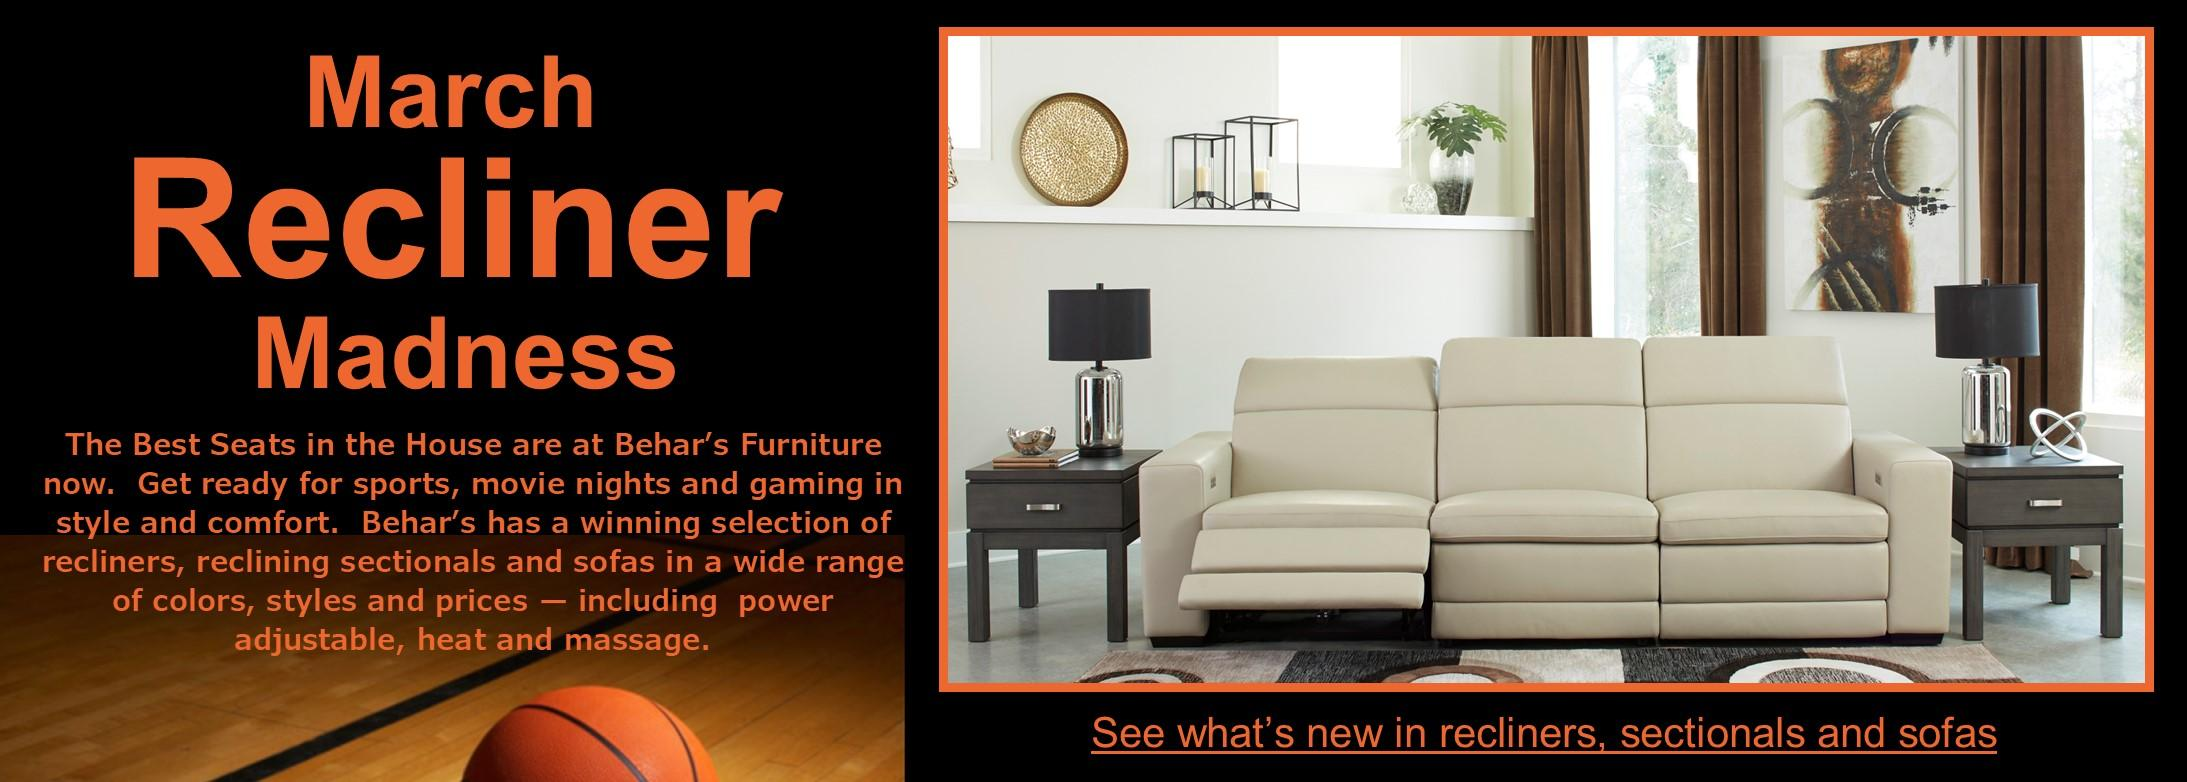 March Recliner Madness -- get ready for sports, movie nights and gaming